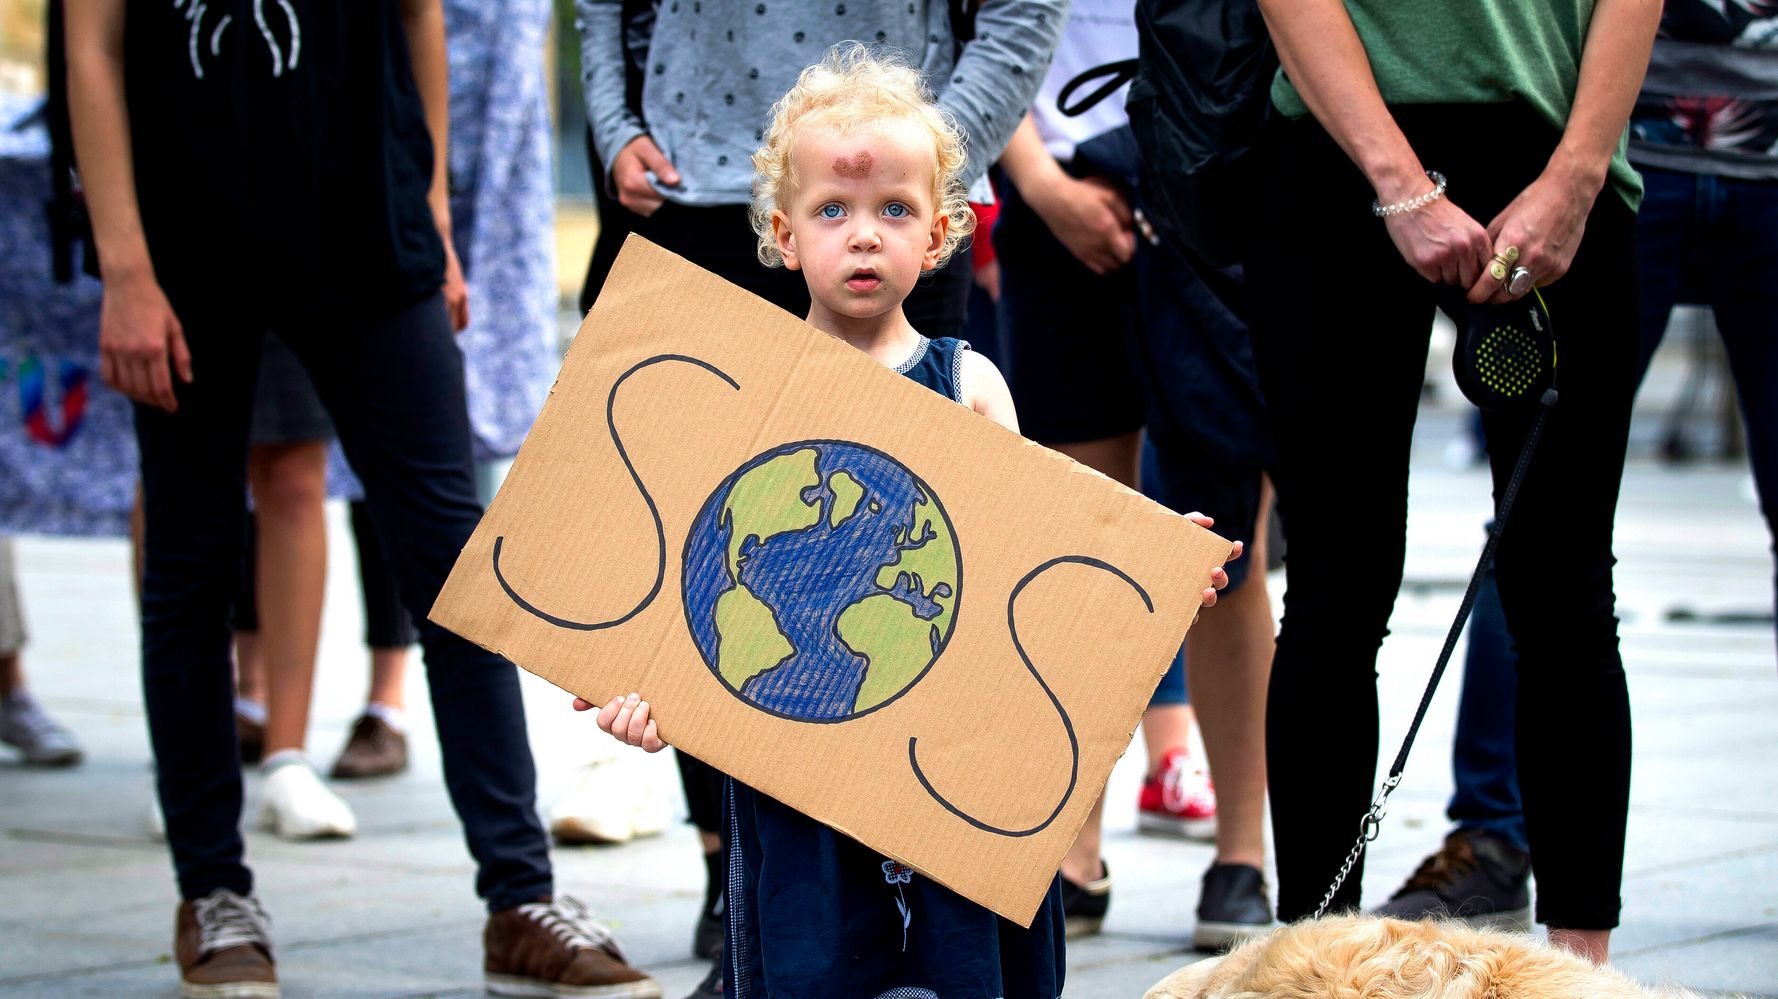 Global Climate Strike 2019: 11 Things To Do If You Can't Attend